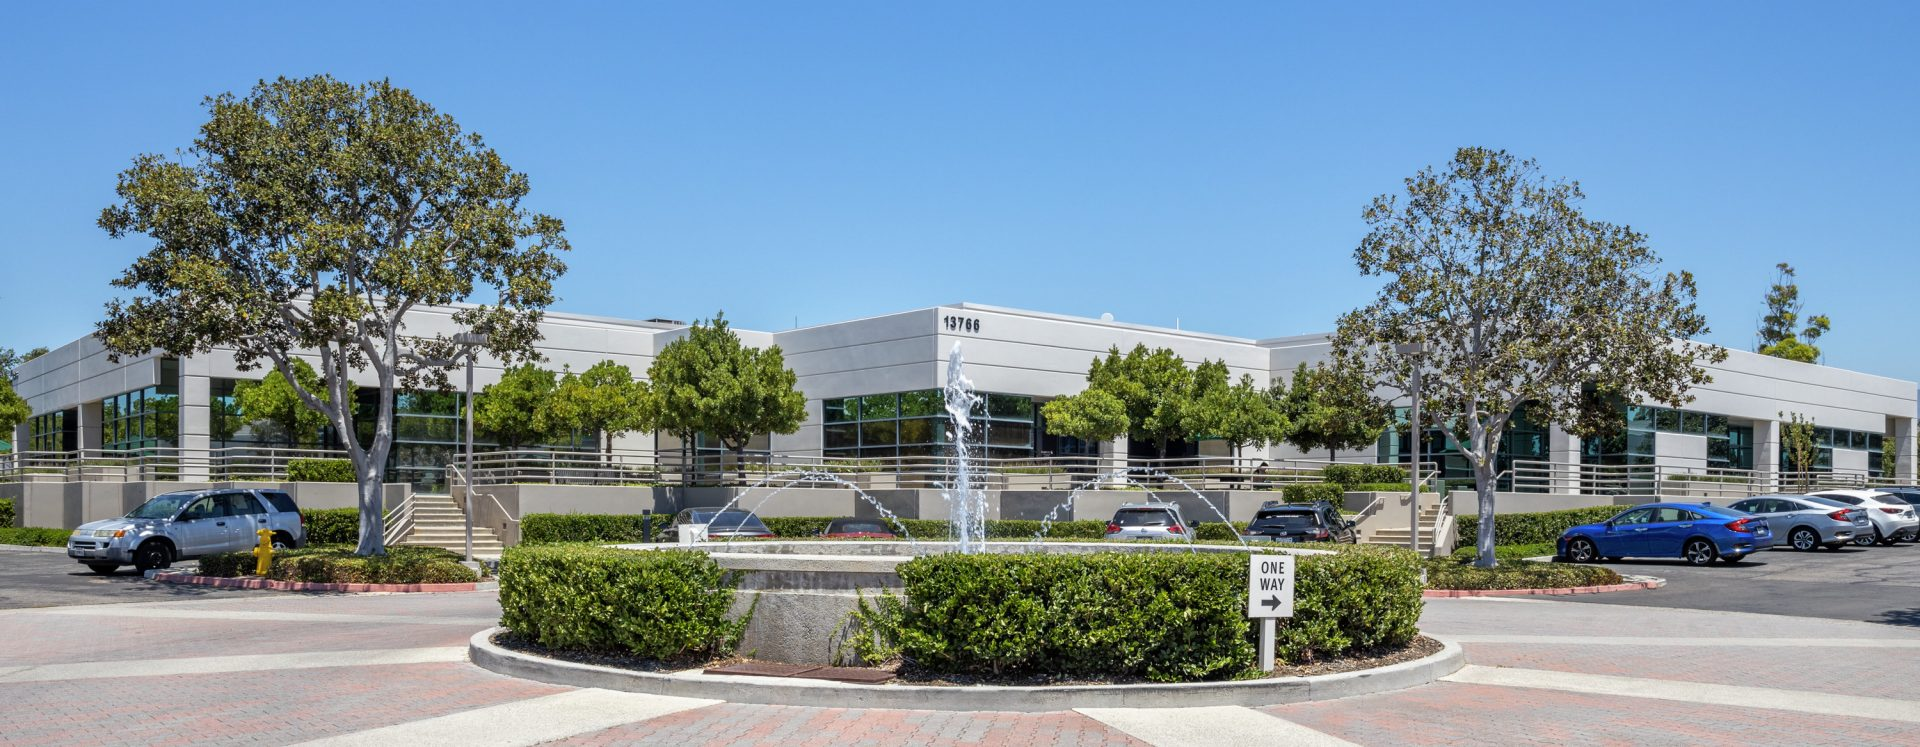 General views of Tripointe office buildings in Irvine, CA